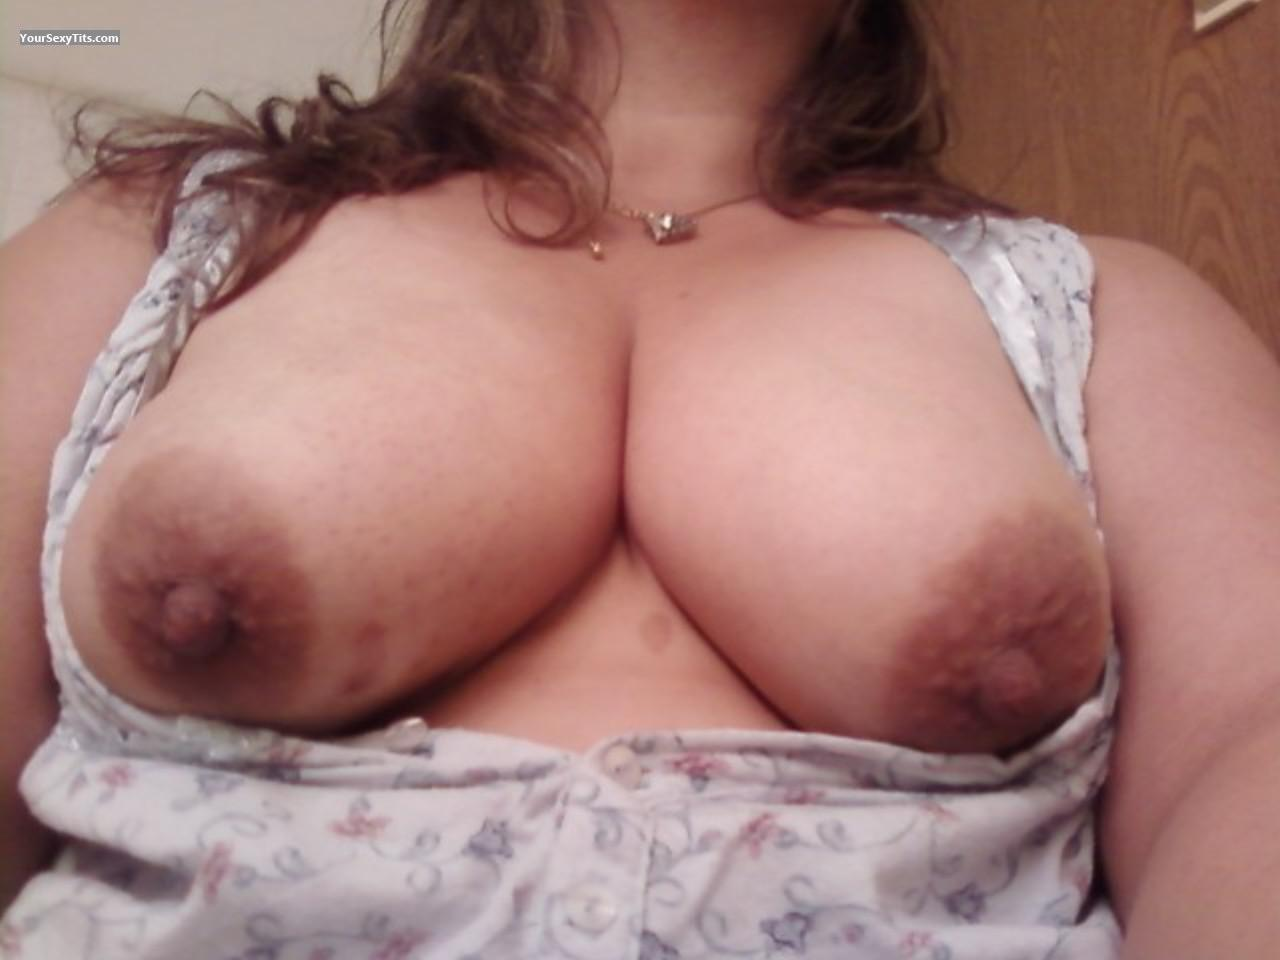 Big Tits Of My Room Mate Selfie by Stacey Think Nipples